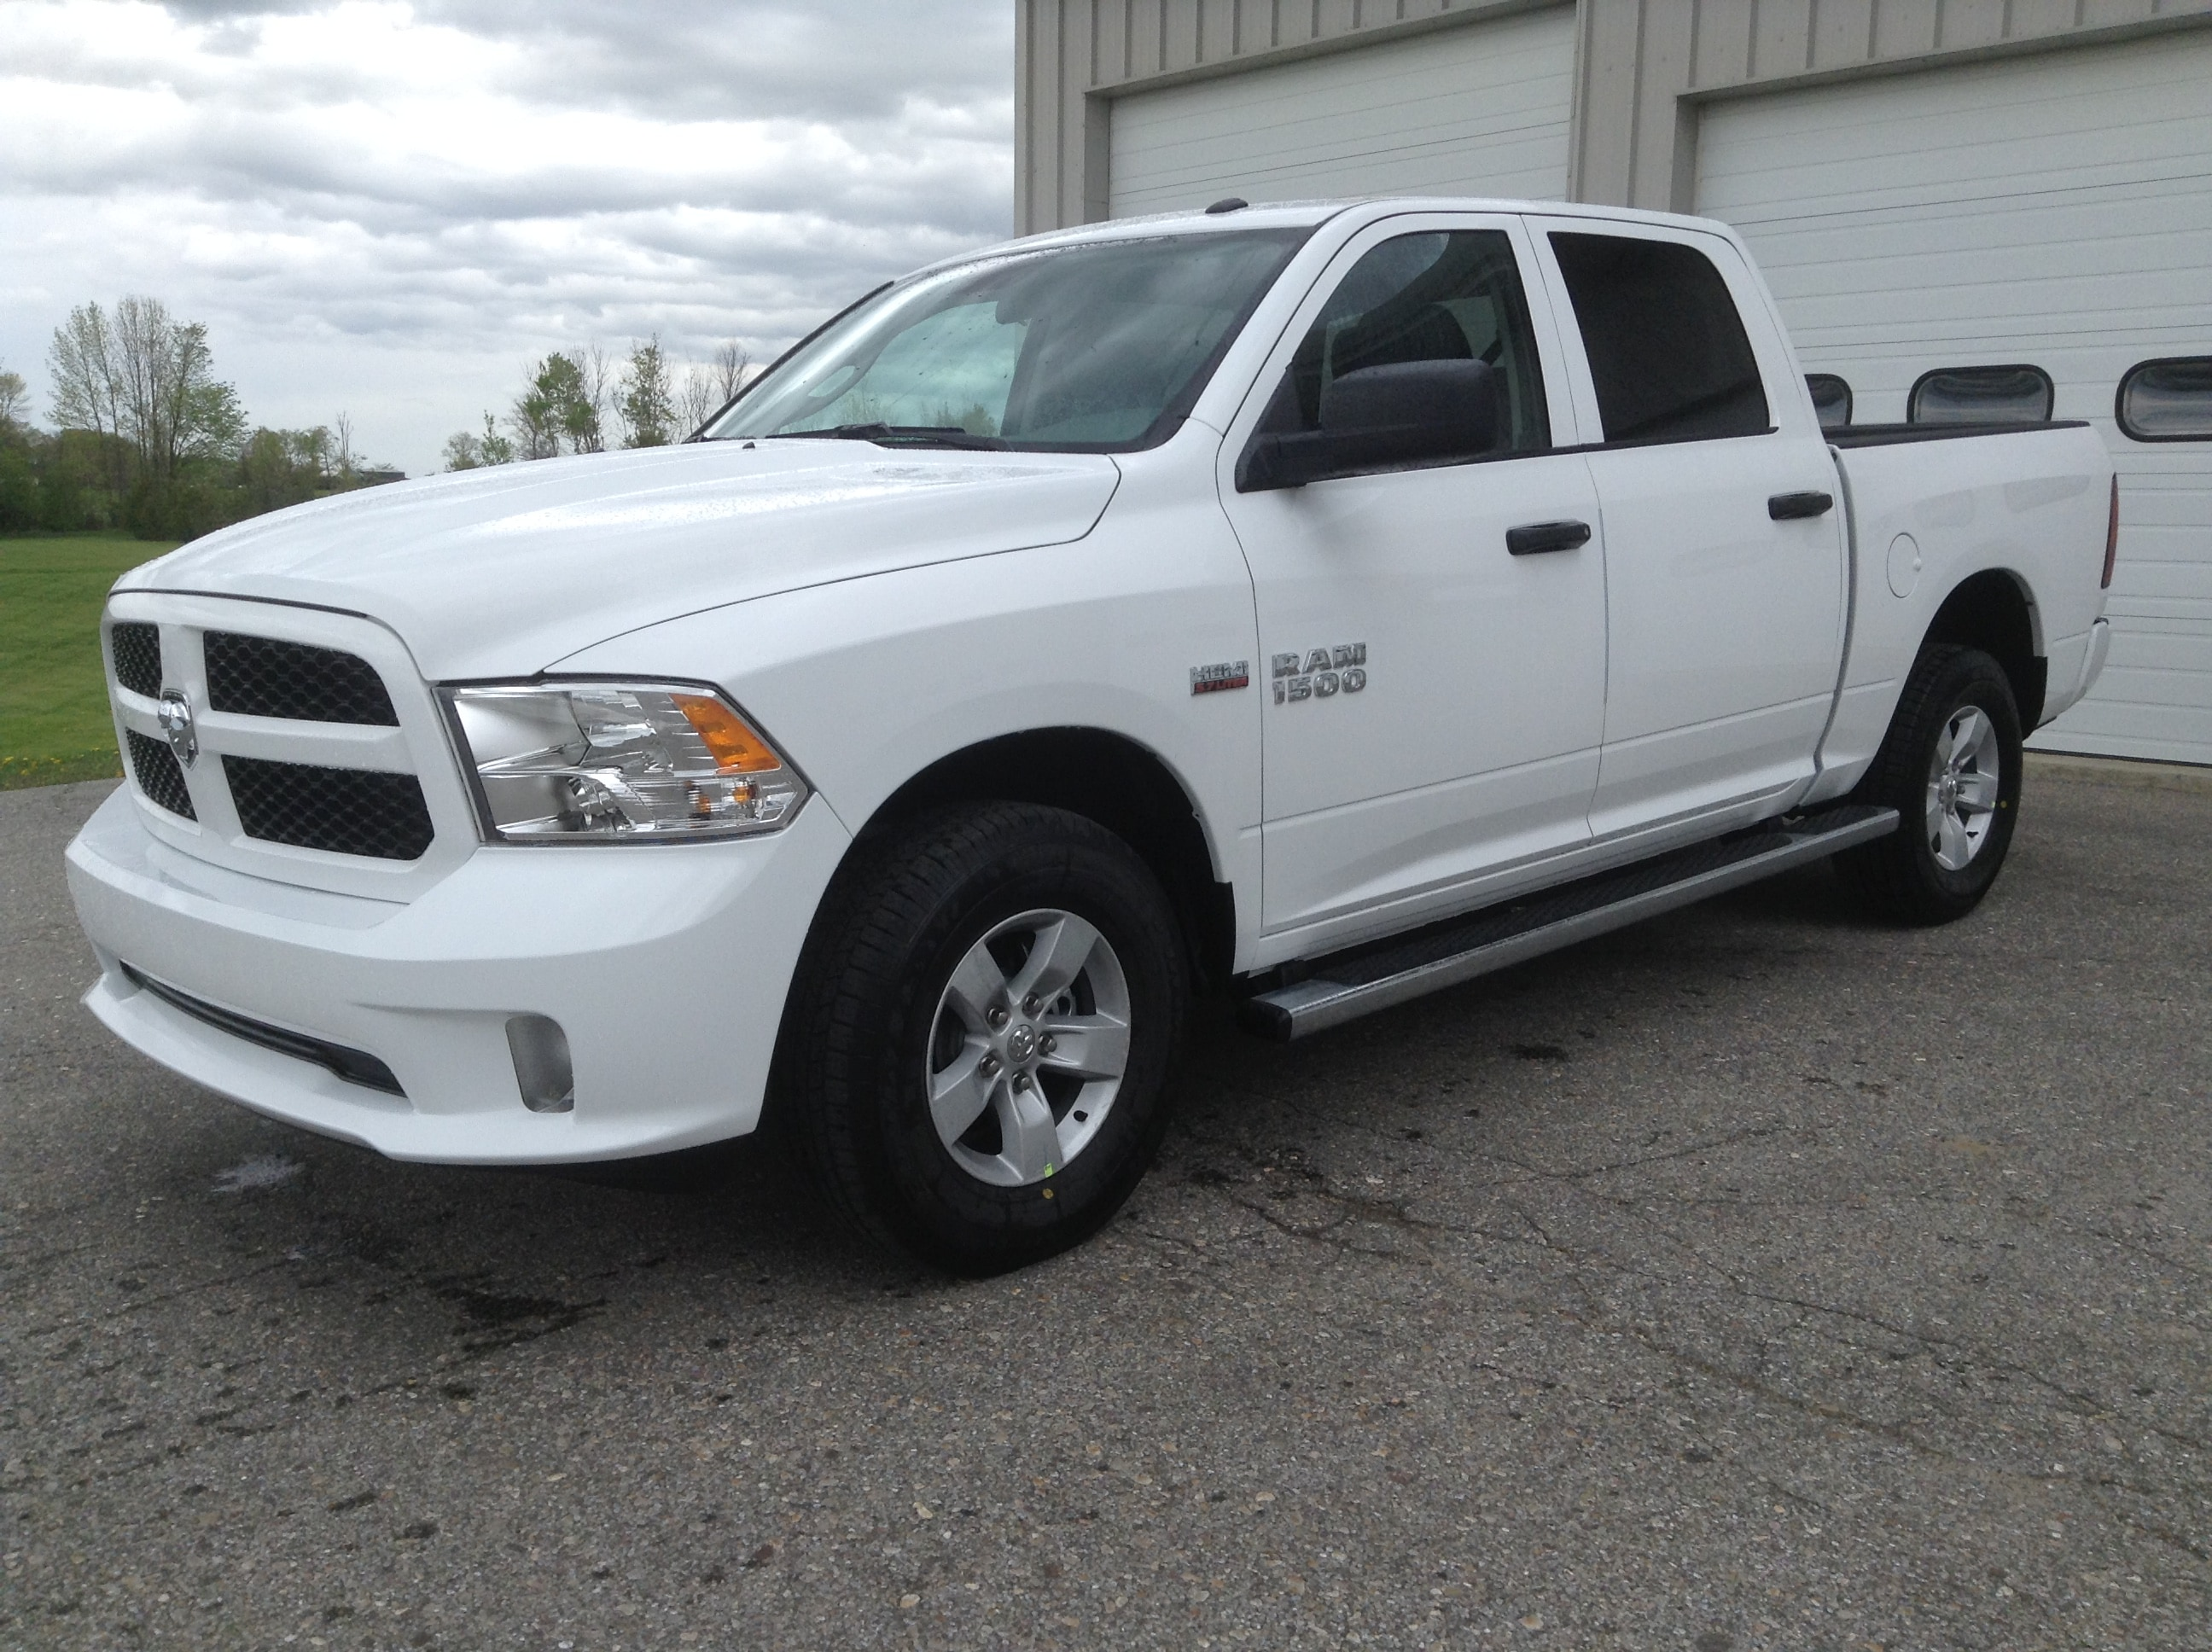 2017 Ram 1500 Crew Cab 4x4, Pickup #TK7817 - photo 1